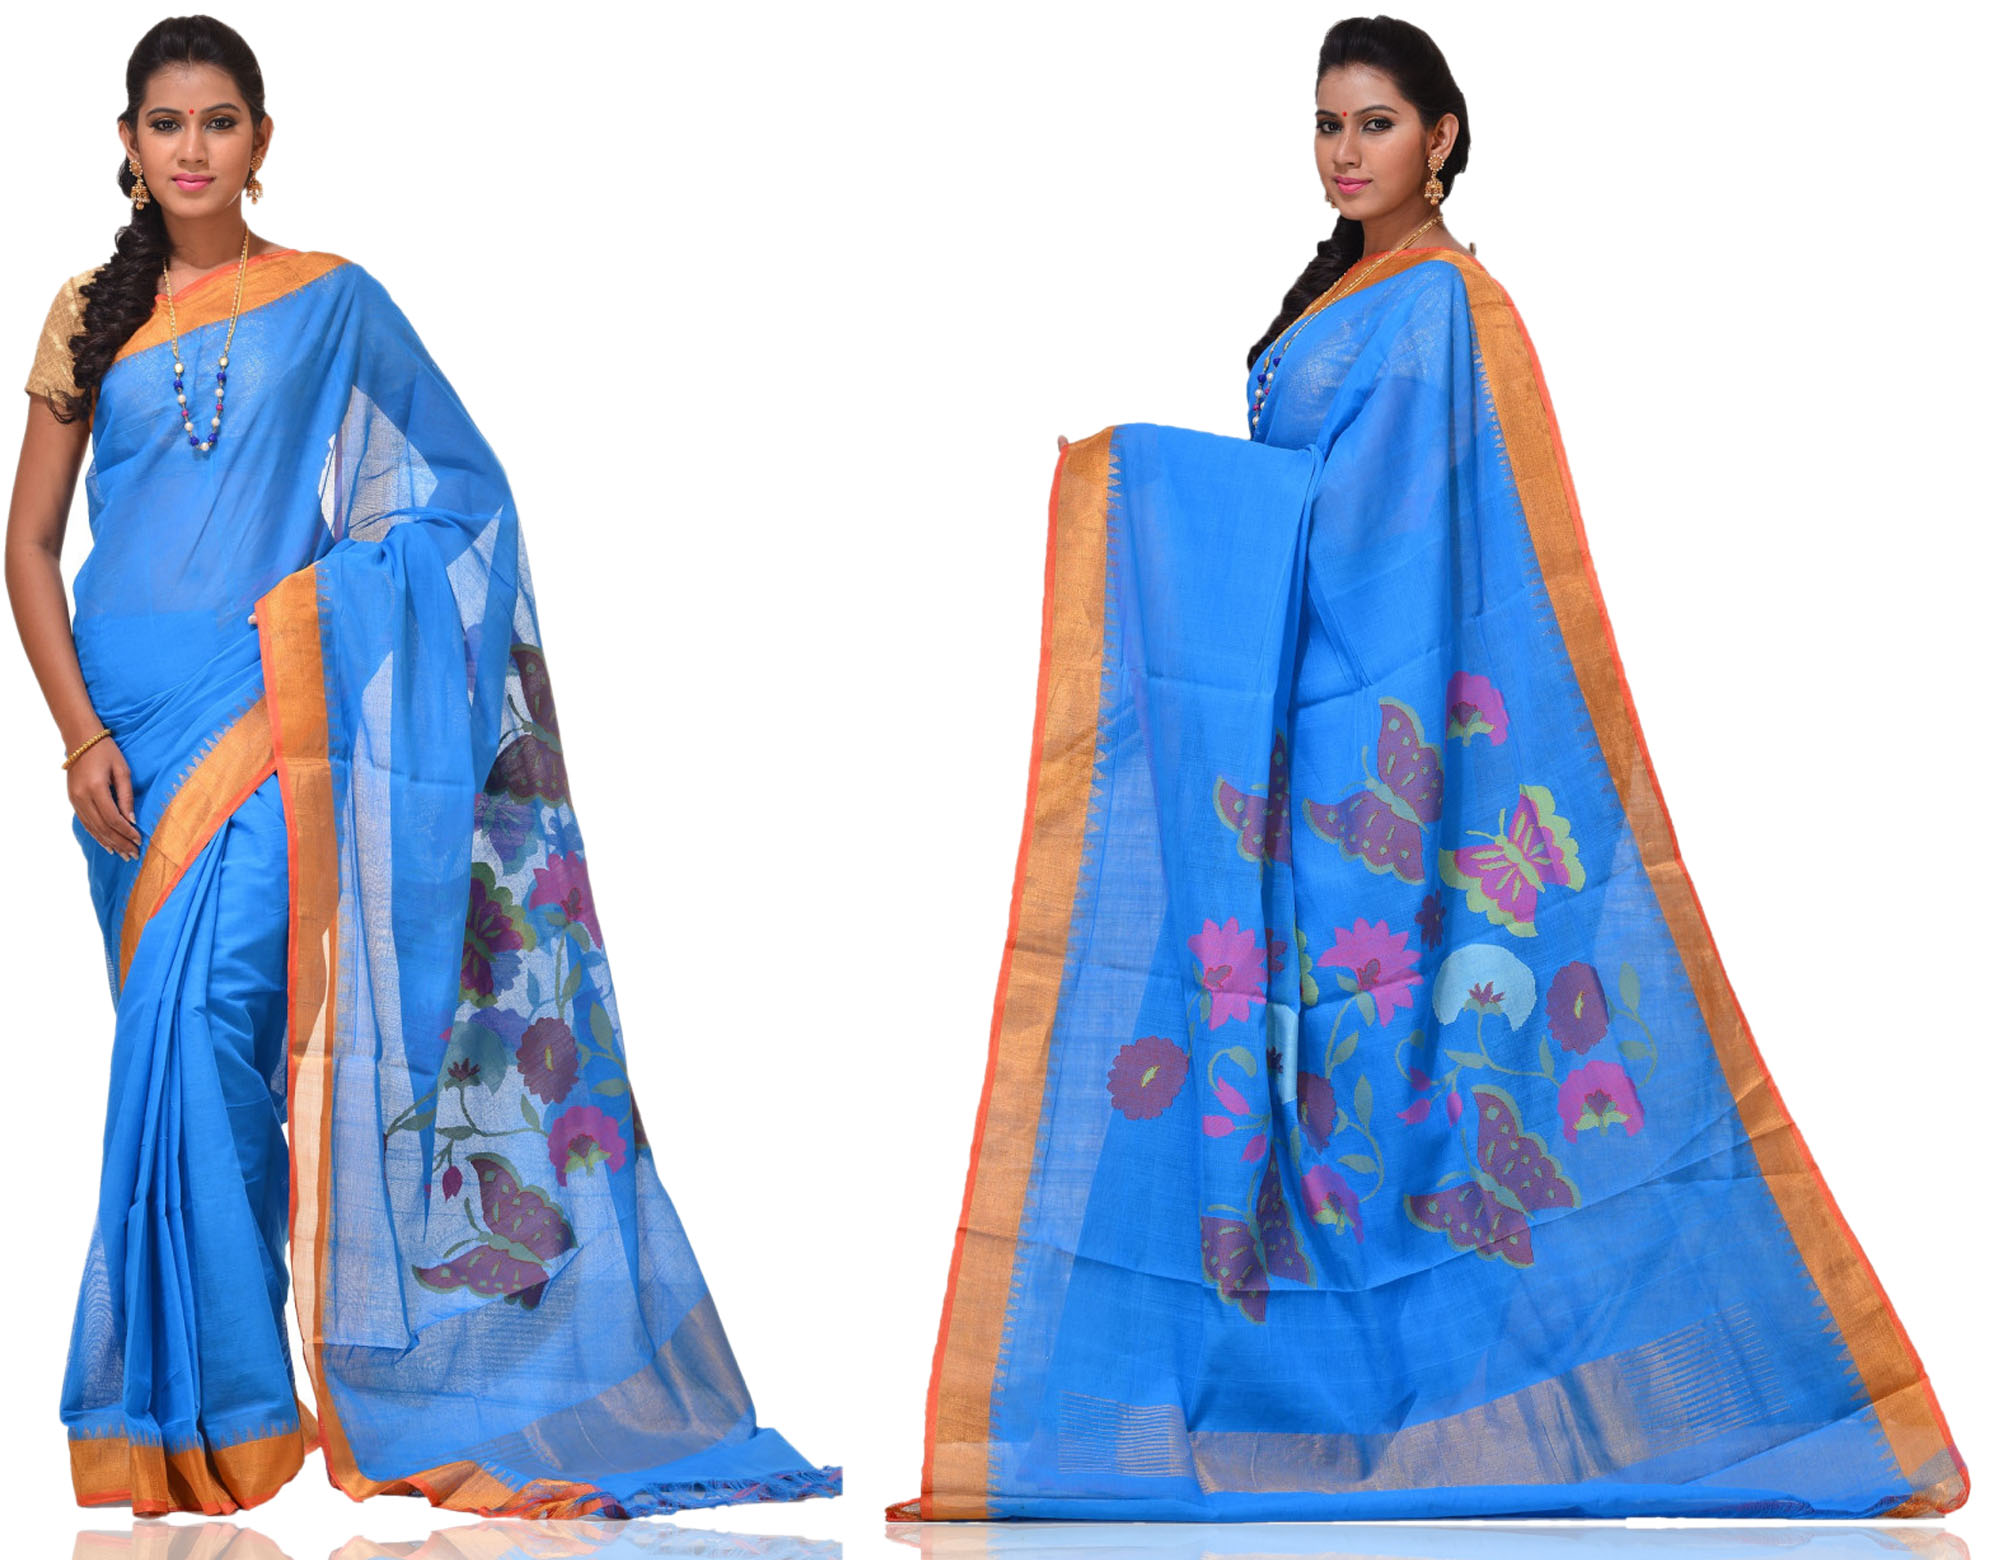 Price: - 12500/-   New designs of khadi sarees, khadi cotton silk sarees, khadi cotton fabric, khadi silk sarees. Sign up now for E-book you will be updated with latest collection of ethnic verities. For More Info Click on :- www.uppada.com  We manufacture of Uppada sarees, Paithani sarees, Banarasi sarees, Venkatagiri Sarees, Gadwal Sarees, Khadi sarees, Hand Painted Kalamkari Dupatta, Ikkat sarees, Kanchipuram Sarees, Dupattas, Stoles etc. For more info us at 040 64640303, 441905005.  Buy online: - uppada.com  - by Paithani, Hyderabad